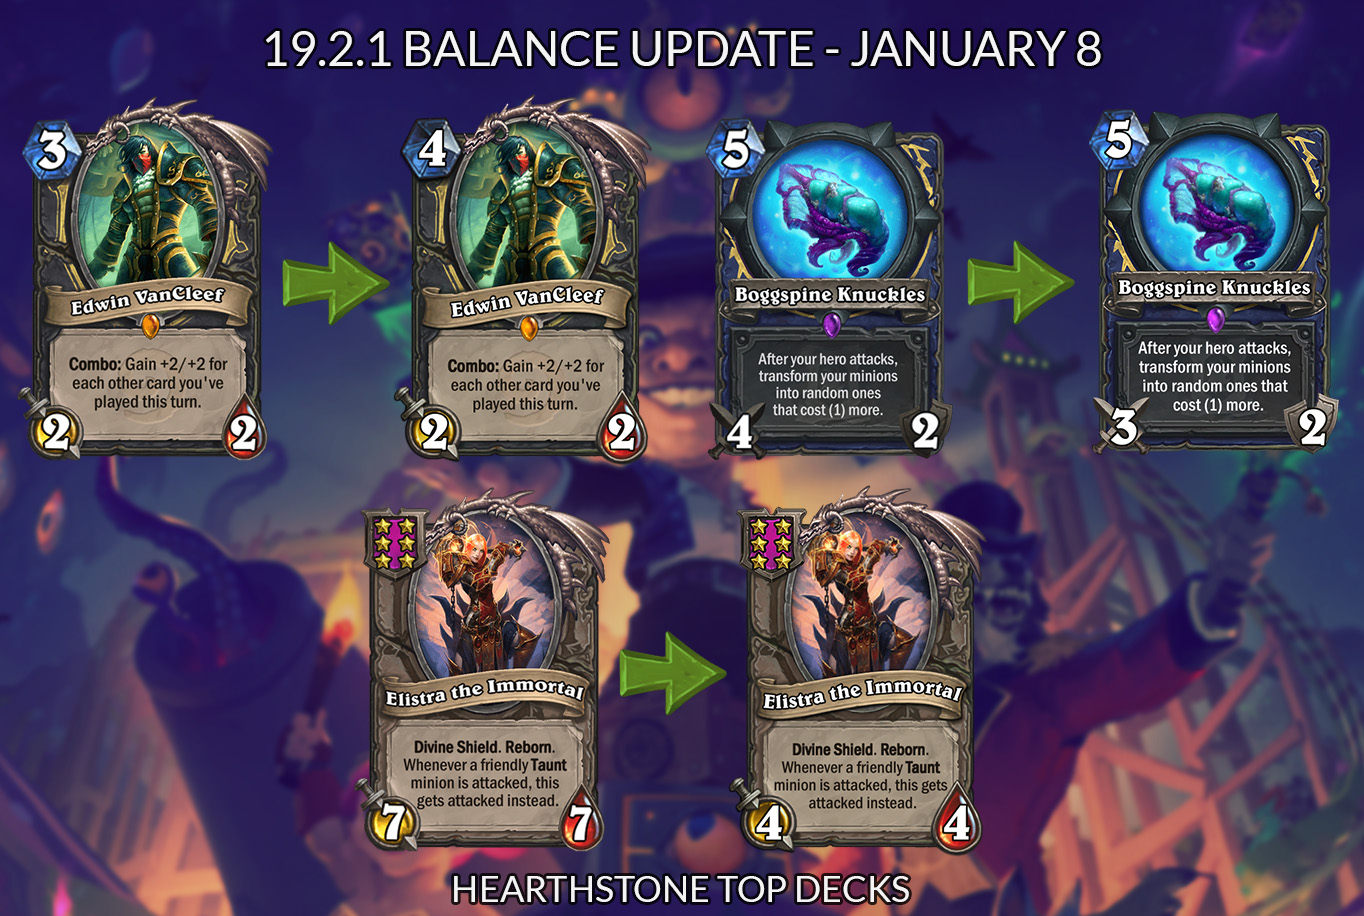 Hearthstone Patch 19.2.1